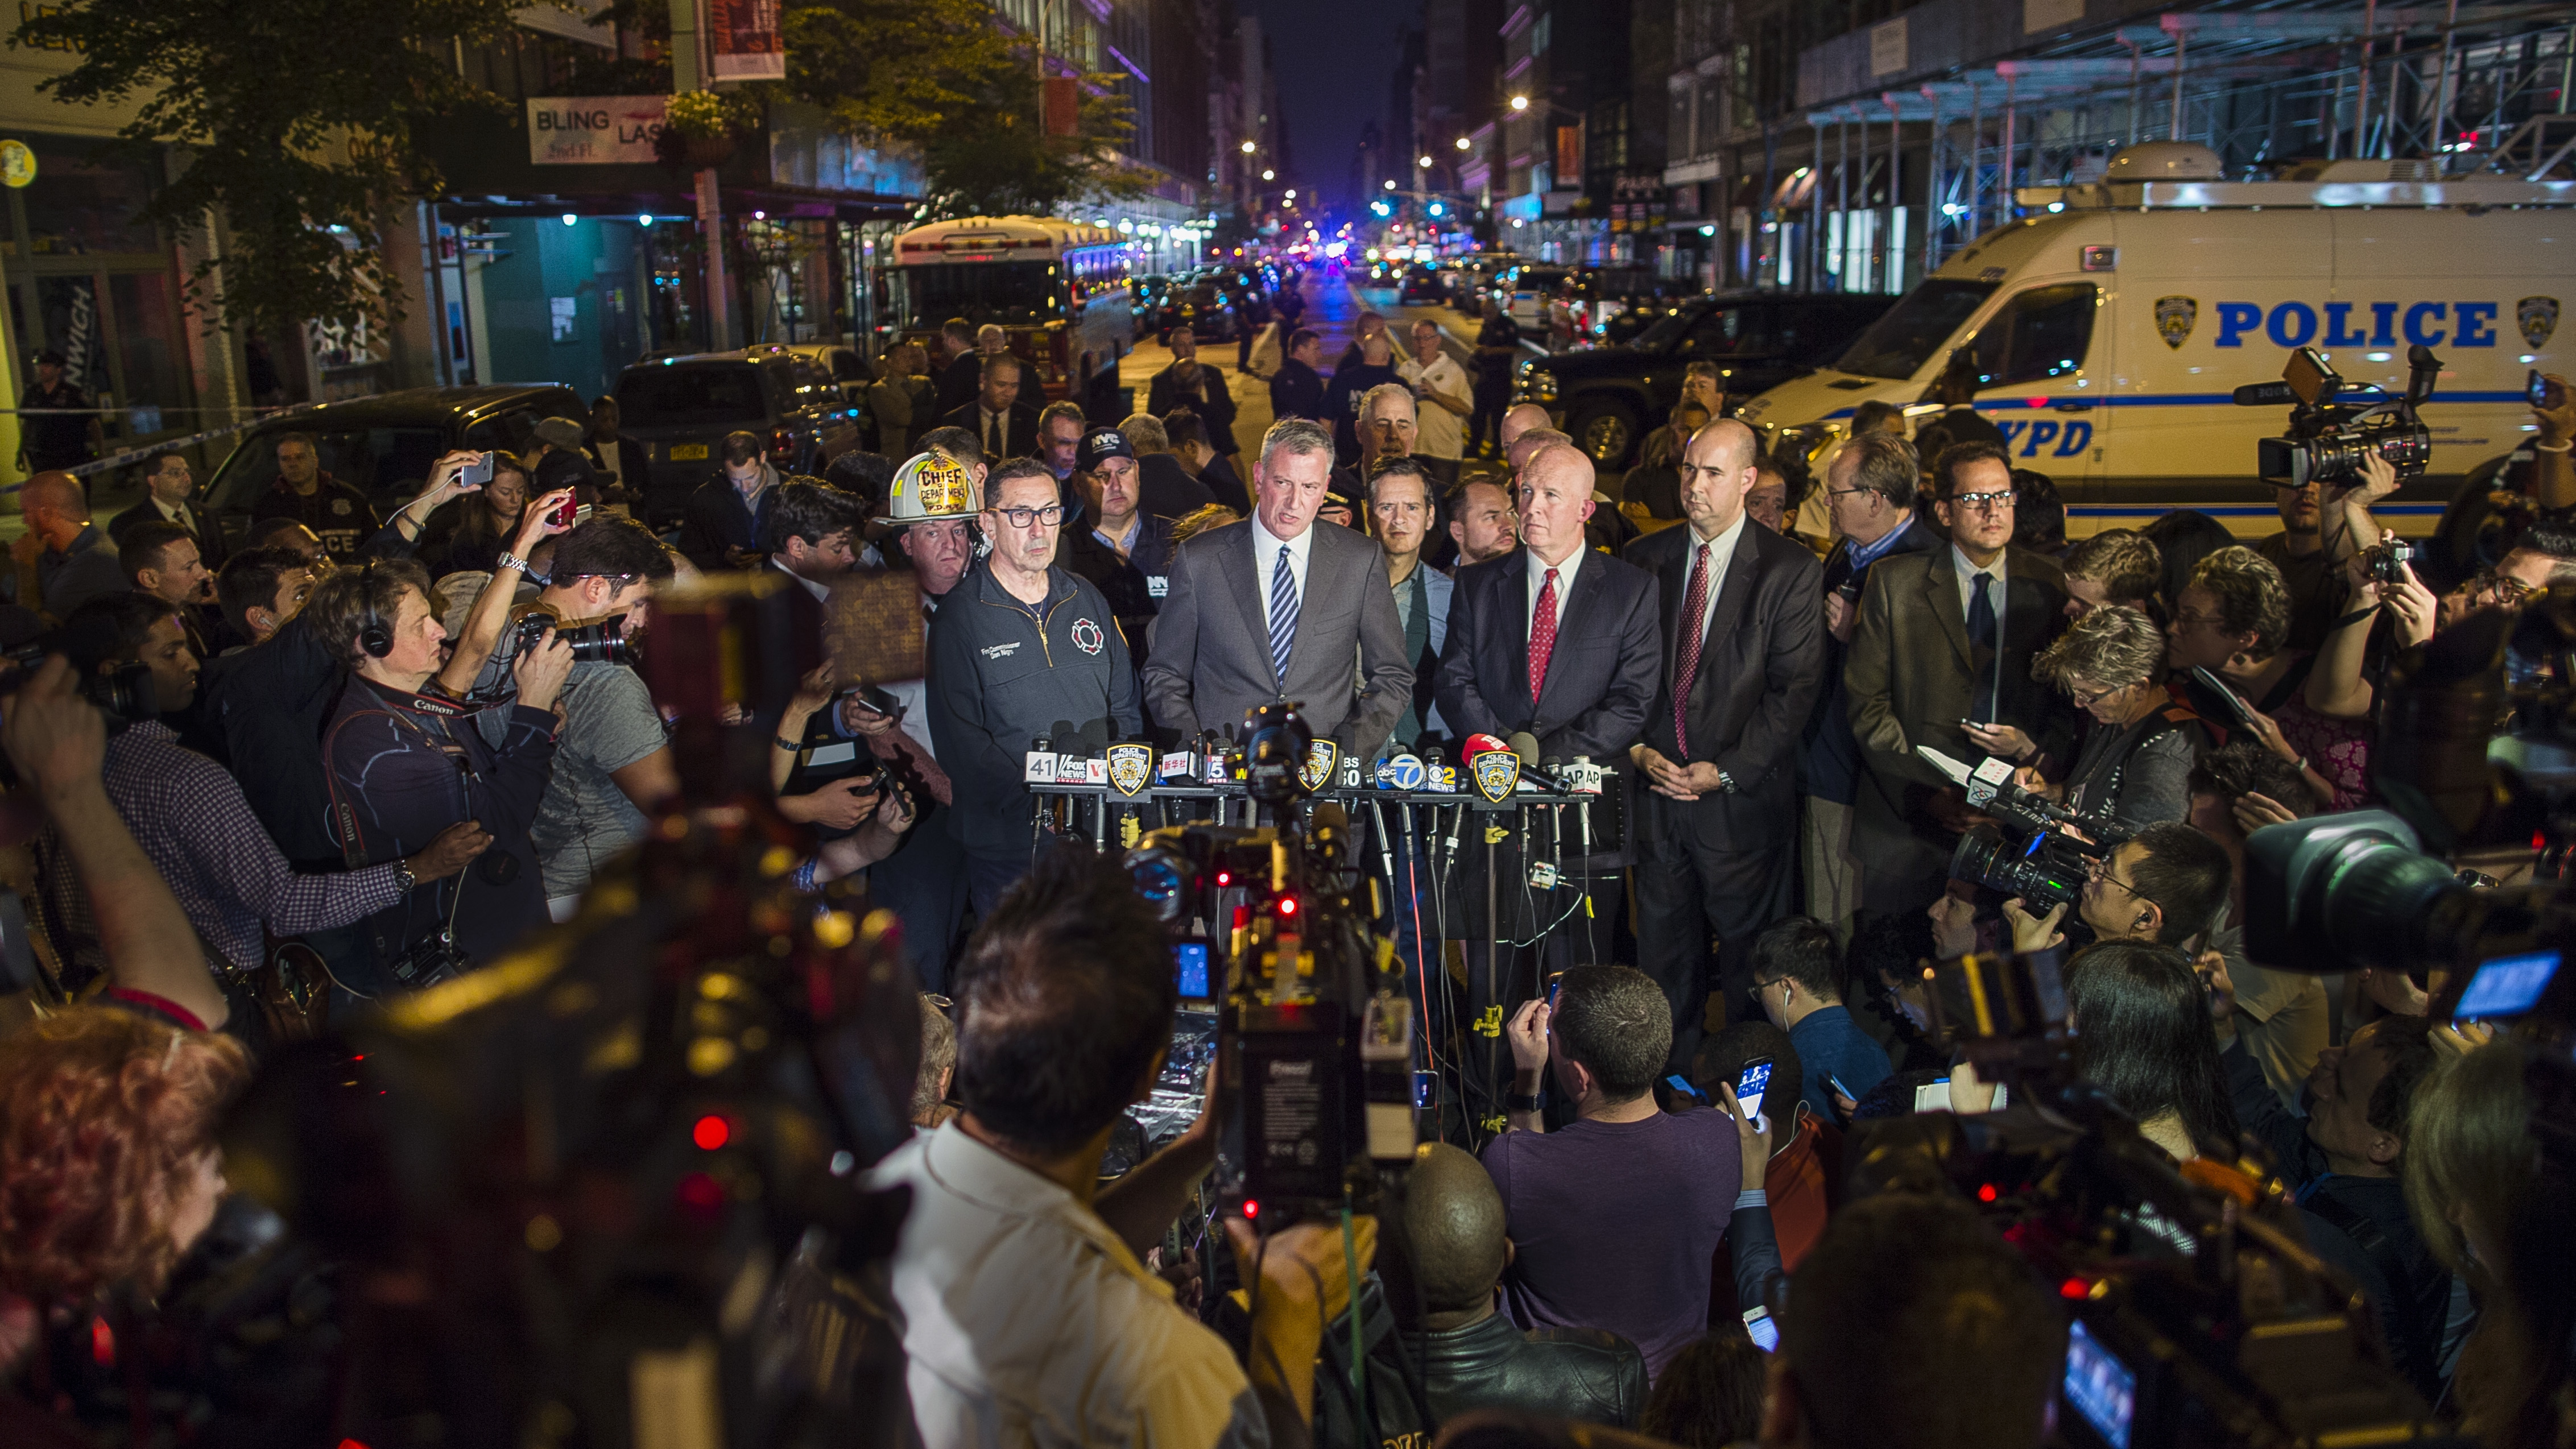 Mayor Bill de Blasio, center, and NYPD Chief of Department James O'Neill, center right, speak during a press conference near the scene of an apparent explosion on West 23rd street in Manhattan's Chelsea neighborhood, in New York, Saturday, Sept. 17, 2016. Police say more than two dozen people were injured in the explosion Saturday night.